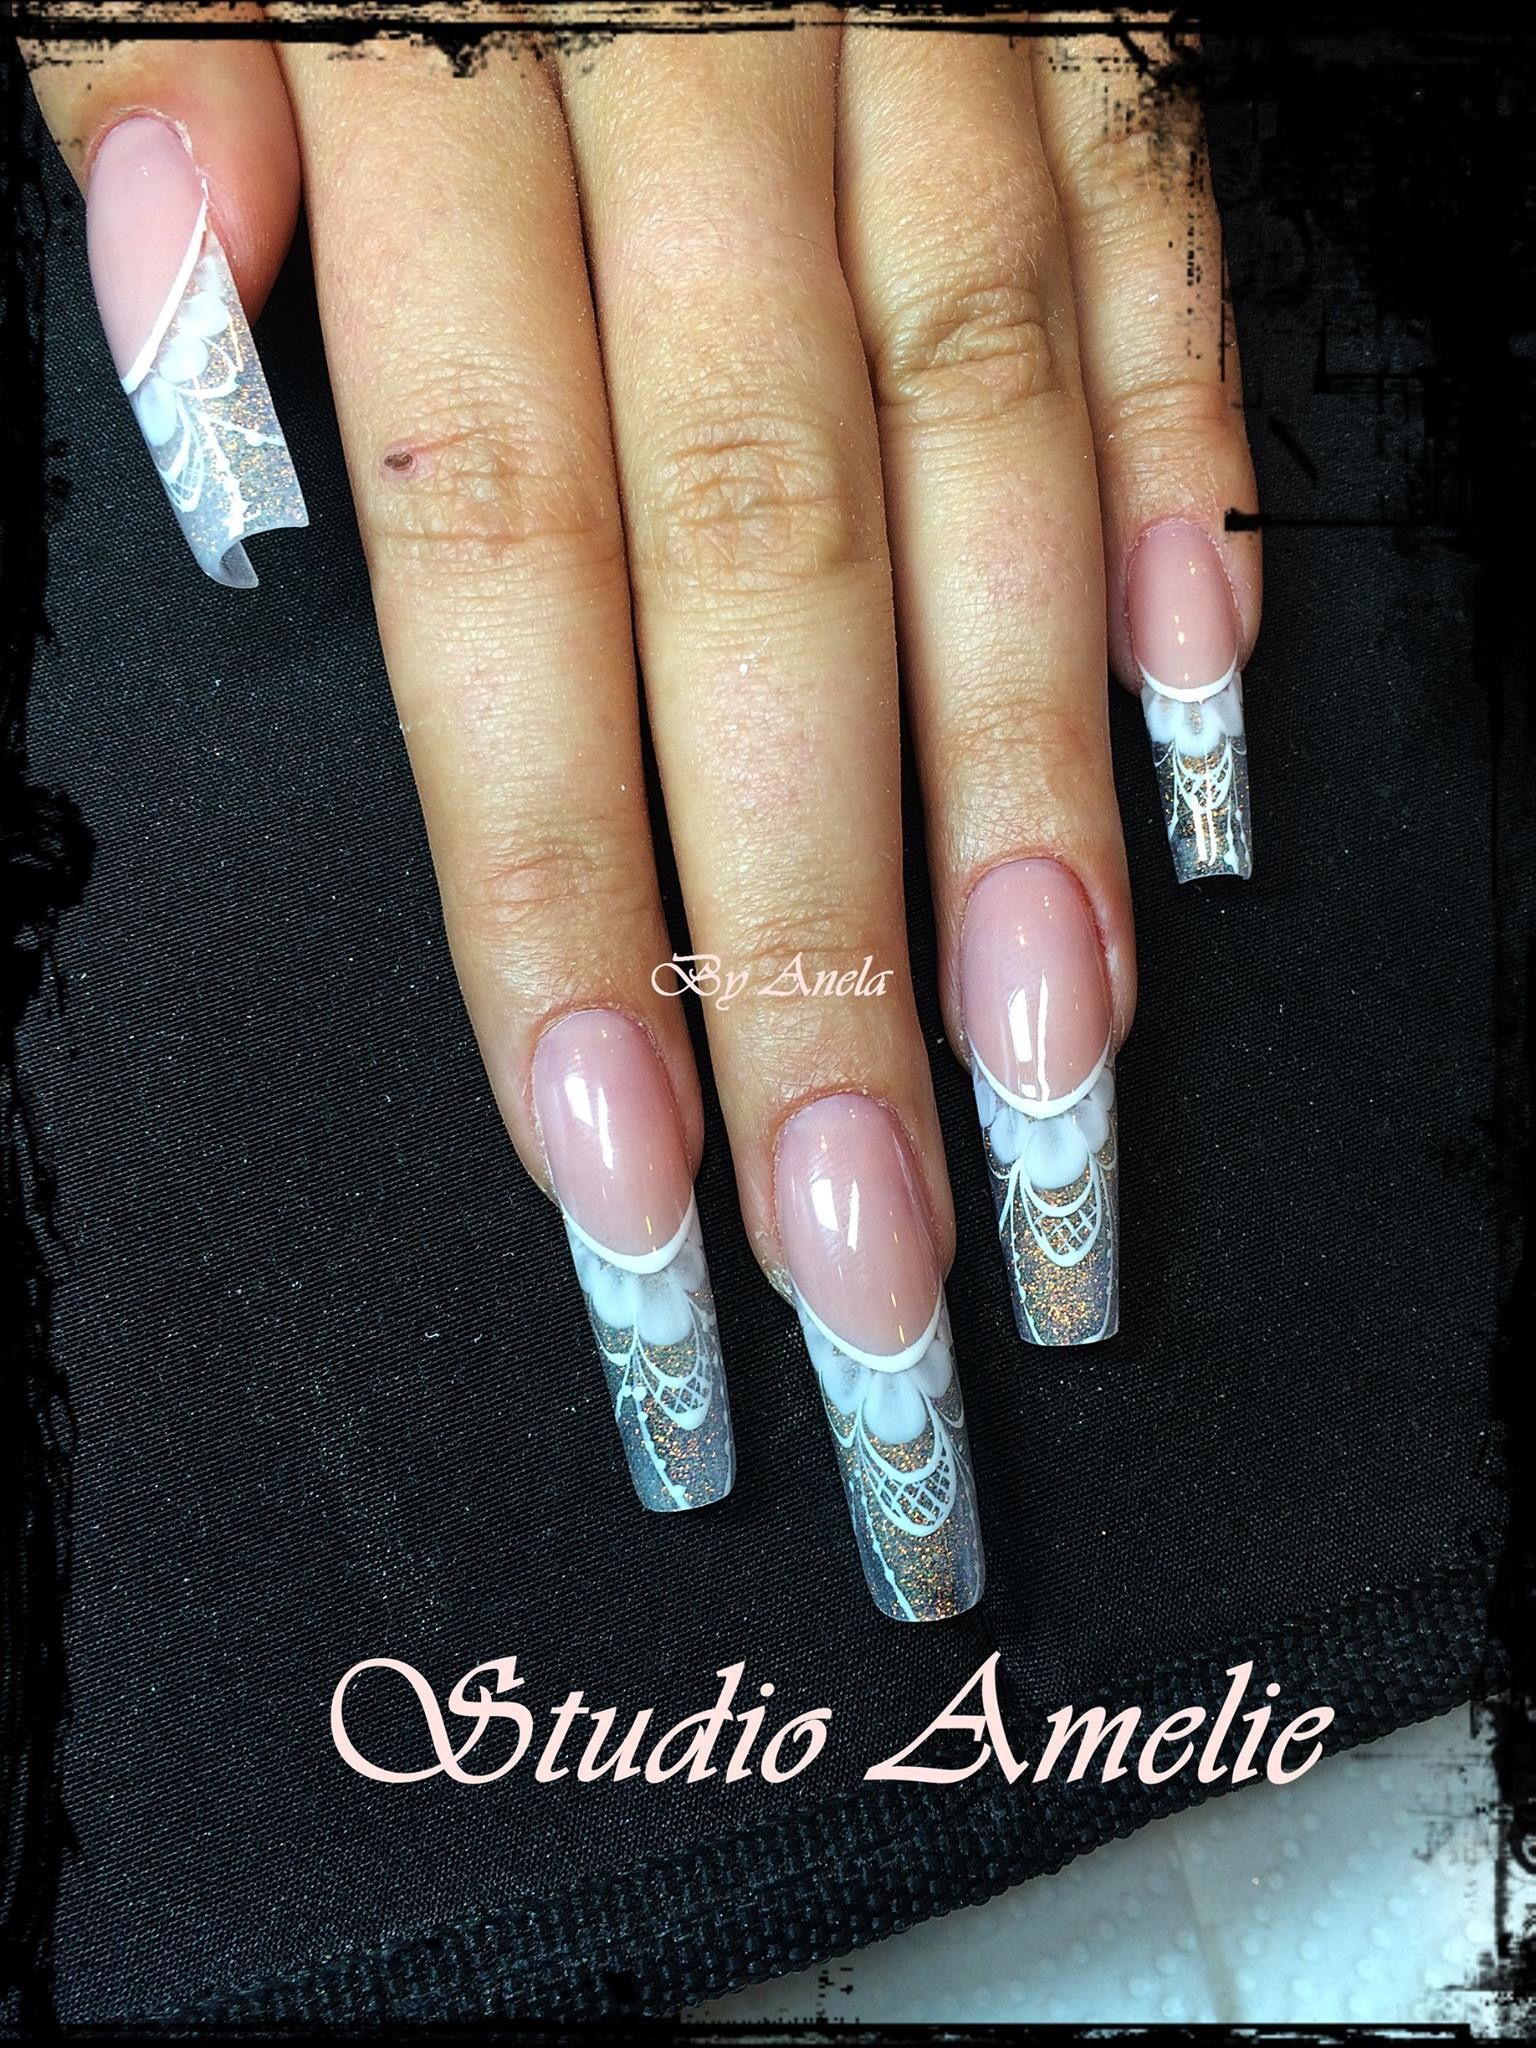 Daily Inspiration: The Reinvented FrenchManicure Daily Inspiration: The Reinvented FrenchManicure new photo